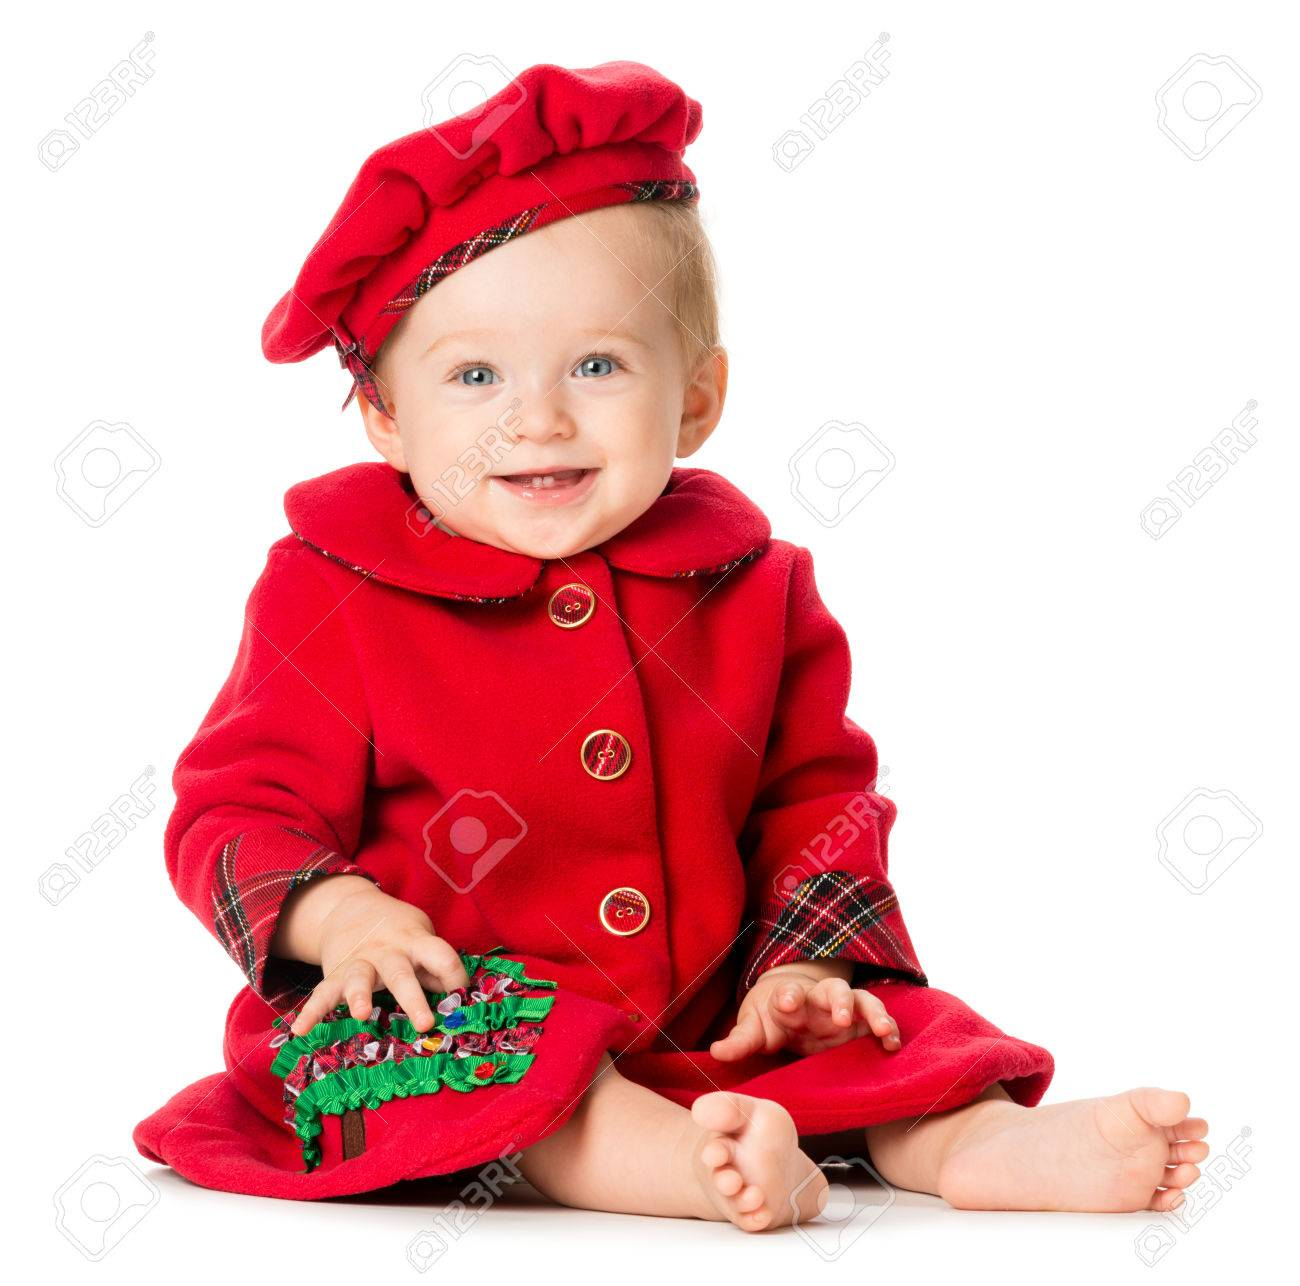 14bf38ba1 Baby Girl In Christmas Outfit Isolated On White Background Stock ...